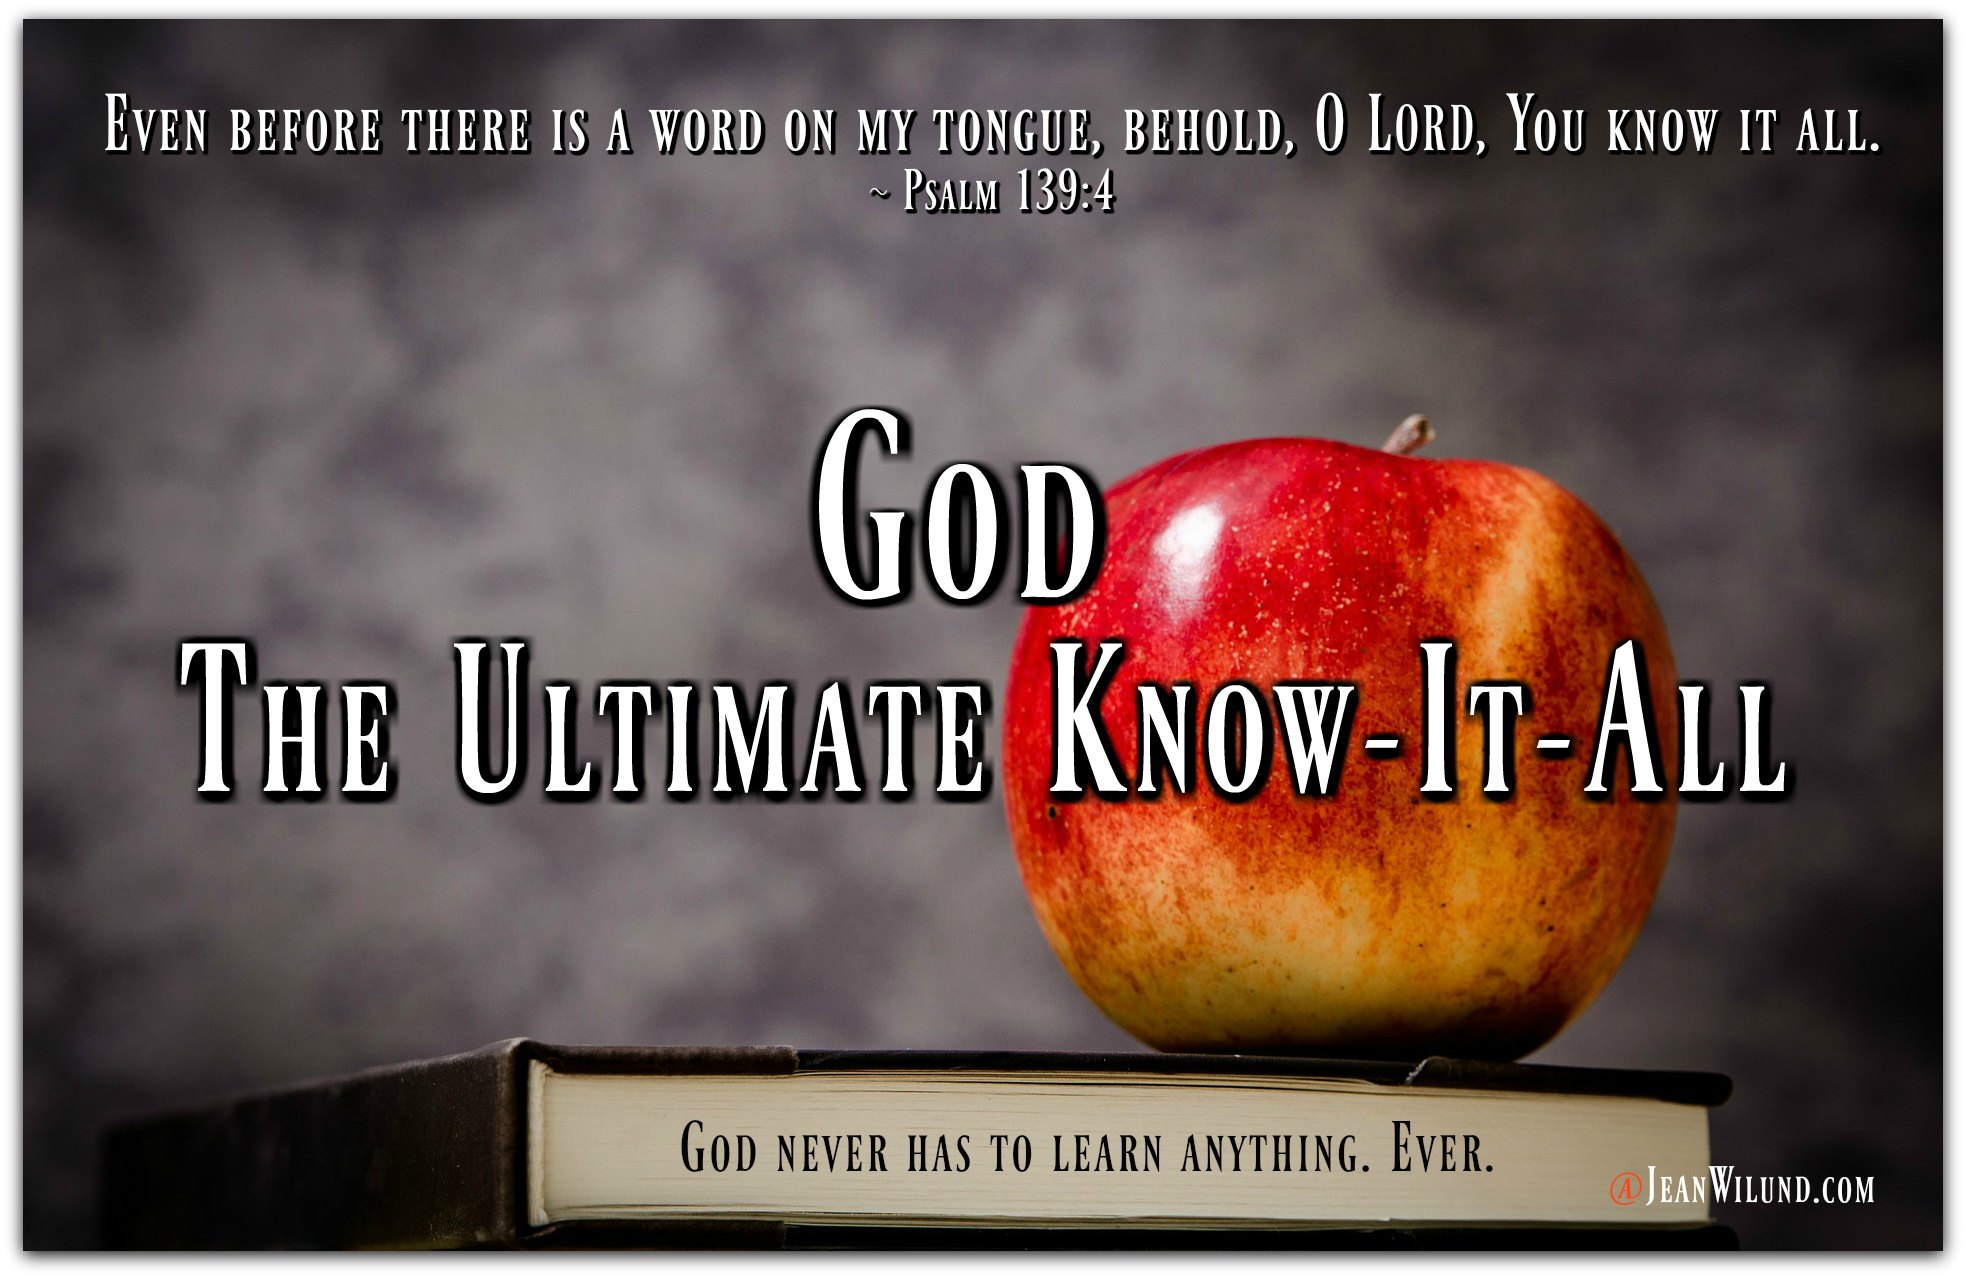 God is Omniscient - The Ultimate Know-It-All (From the Never-Ending, Ever-Growing List of the Character Traits of God) via www.JeanWilund.com